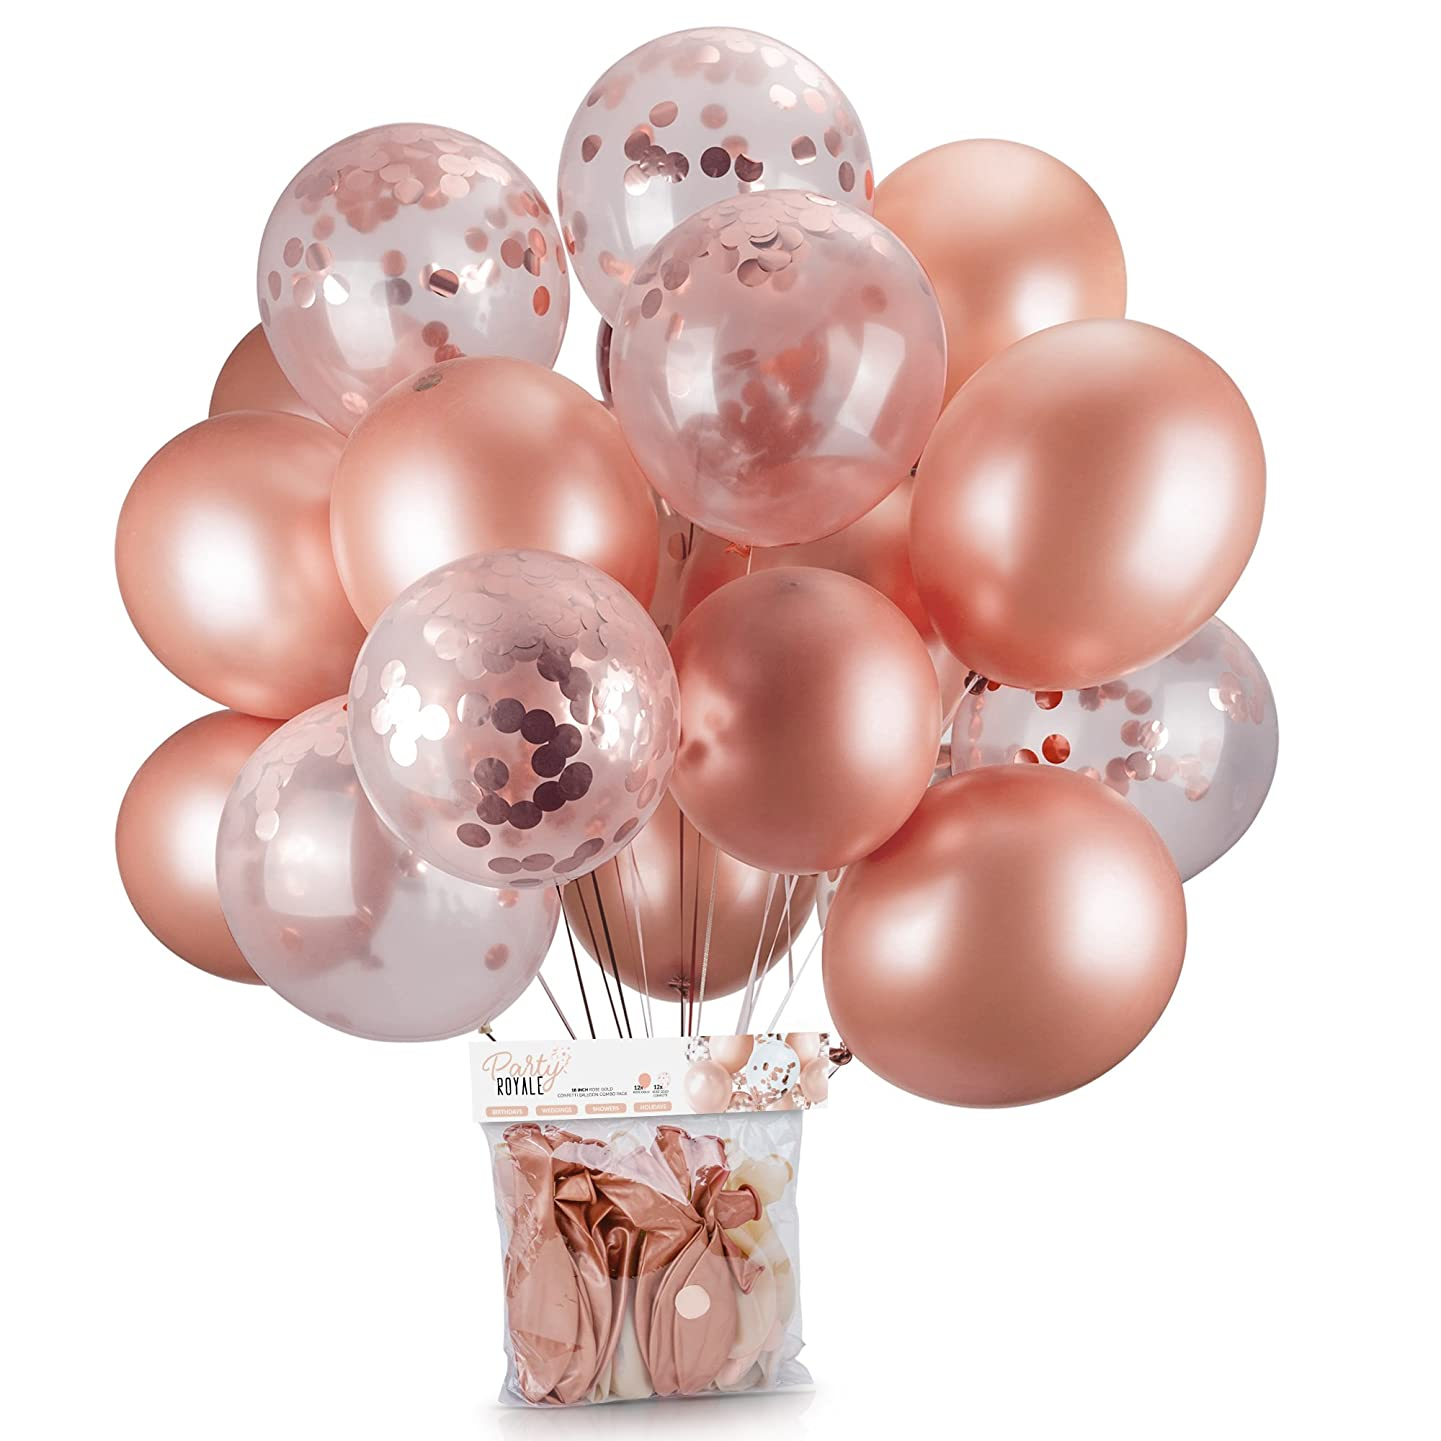 Rose Gold Balloons & Rose Gold Confetti Balloons Pack of 24 - 18 Inch Premium Latex Balloons Perfect for Rose Gold Party Decorations, Birthday Party, Bridal Shower, Baby Shower, Weddings, Engagements